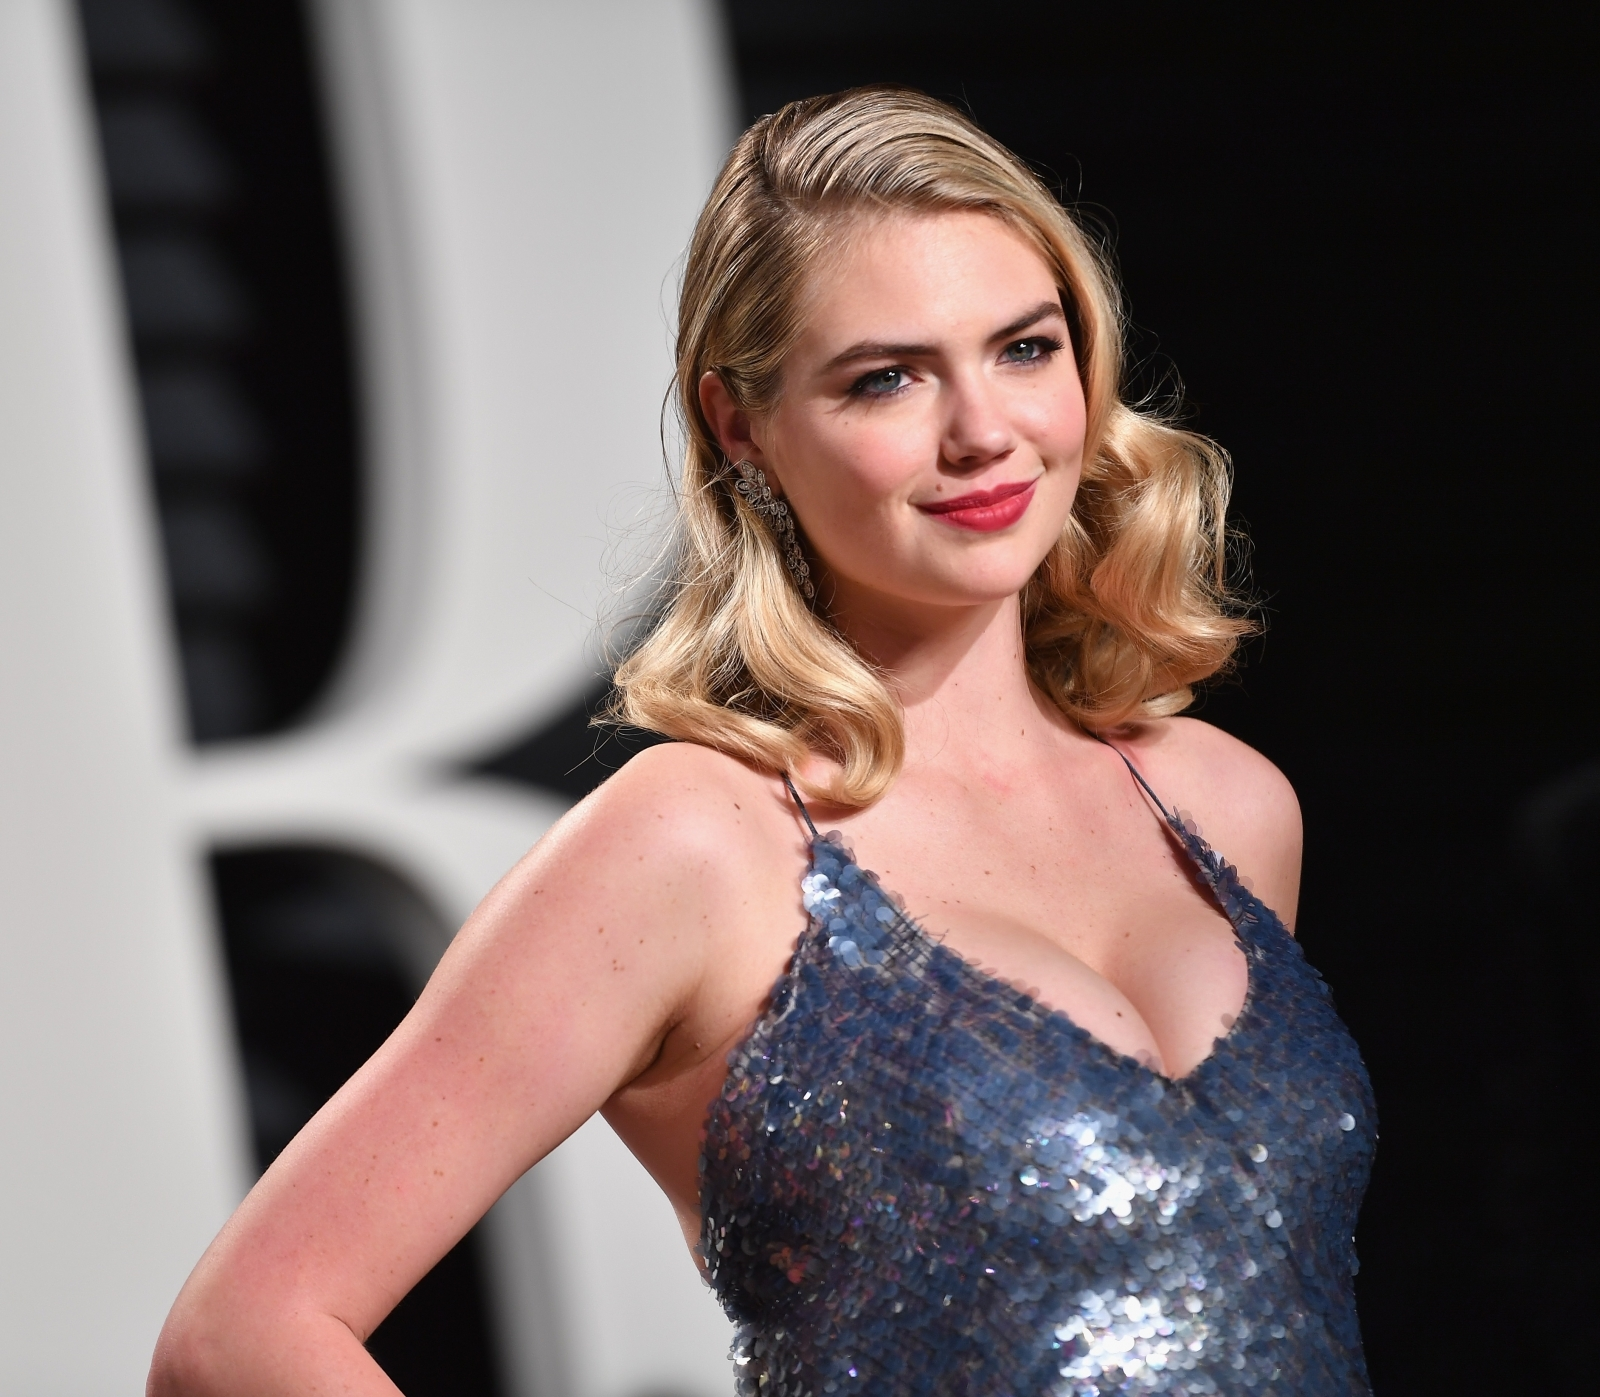 Swimsuit Model Kate Upton Flaunts Stunning Curves In -2655